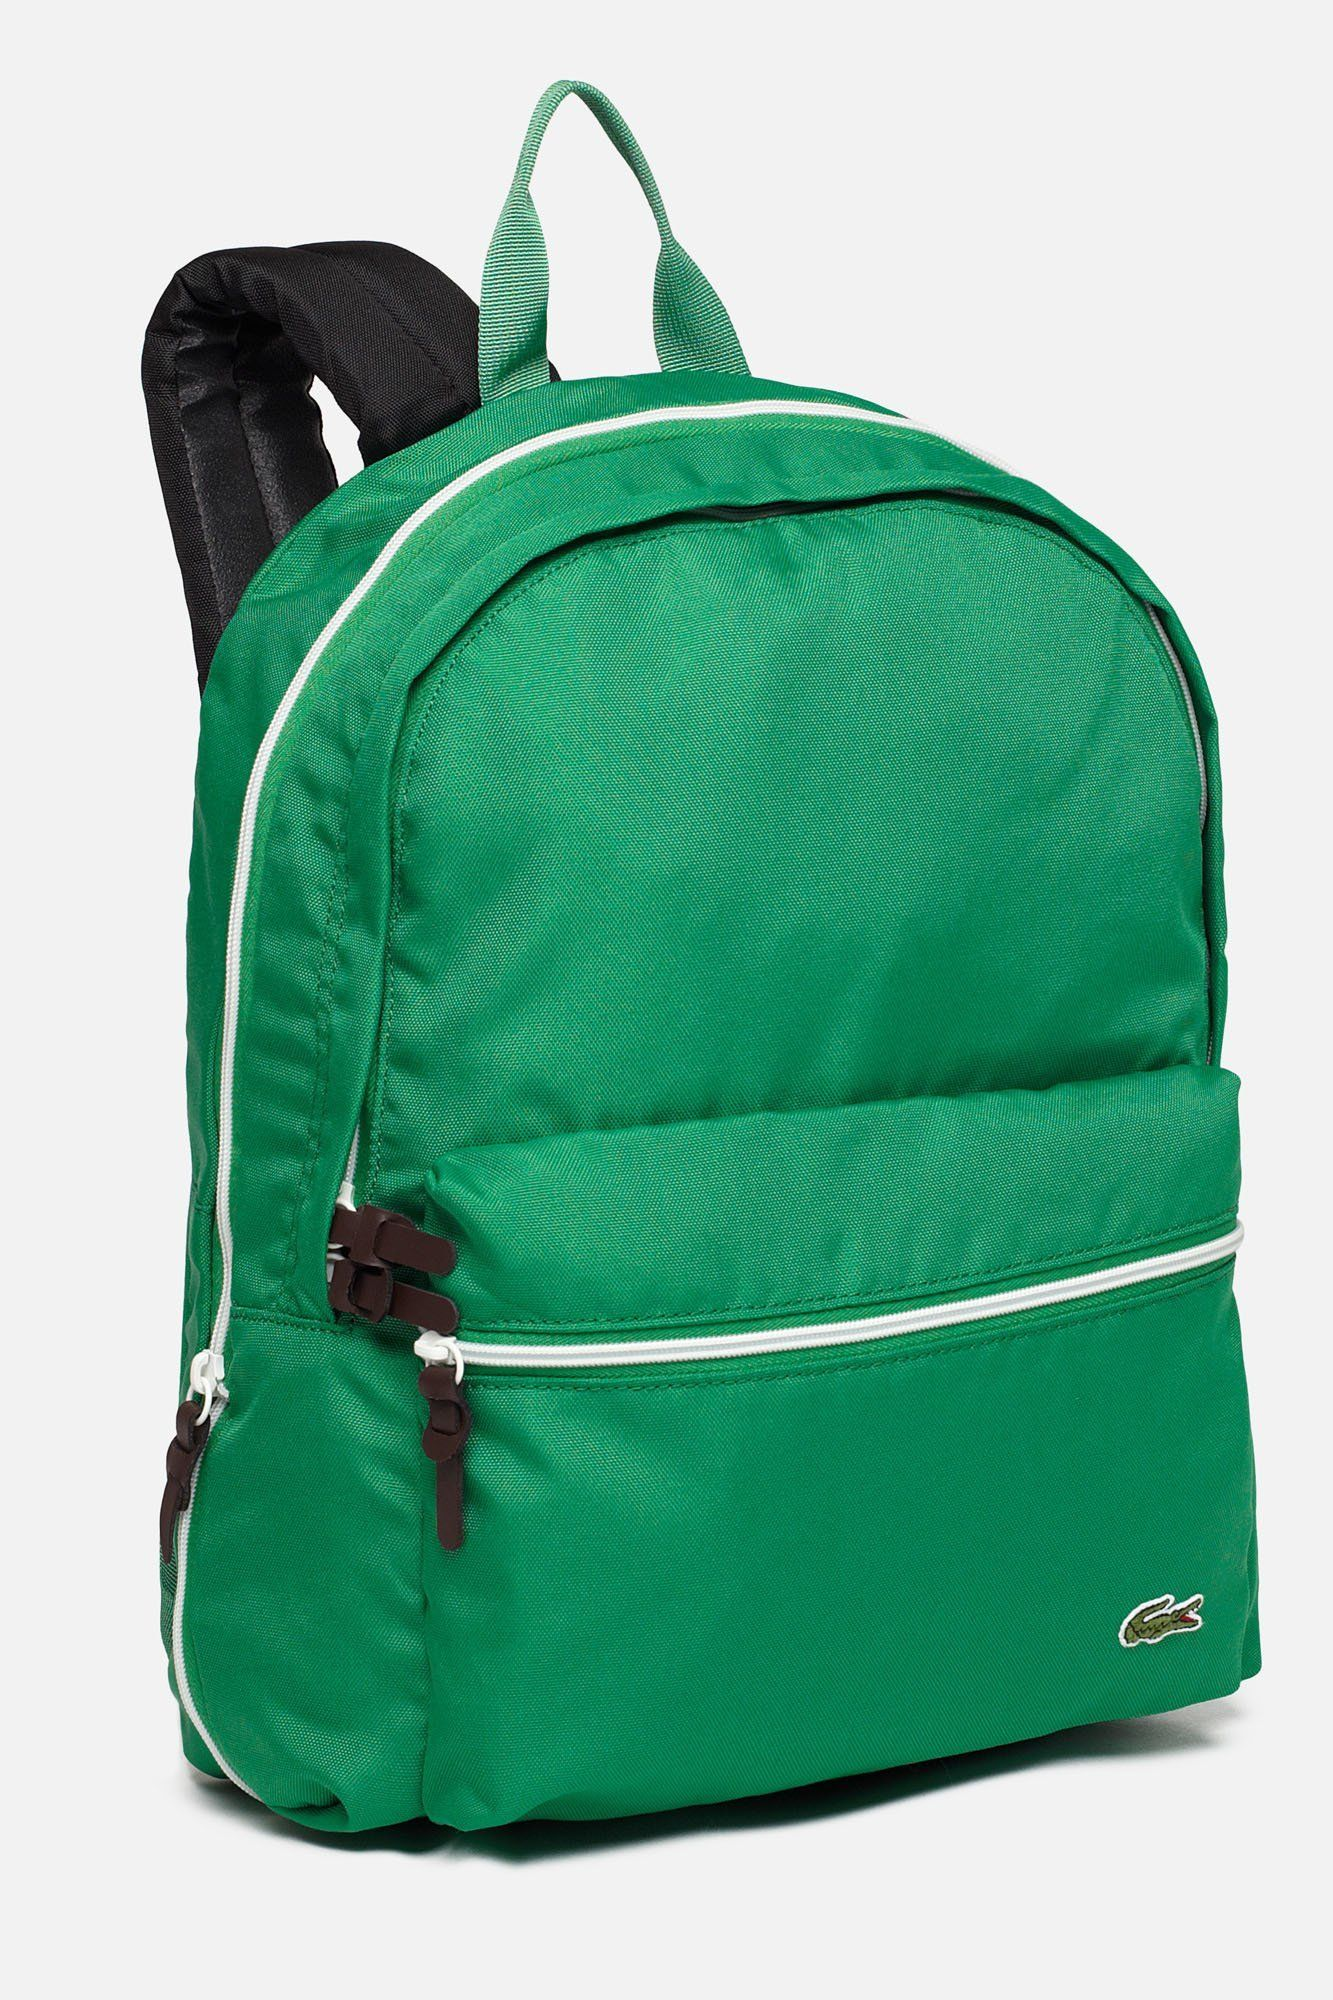 67ad31c18f Lacoste BackCroc Medium Backpack   Blog Items   Lacoste, Lacoste ...